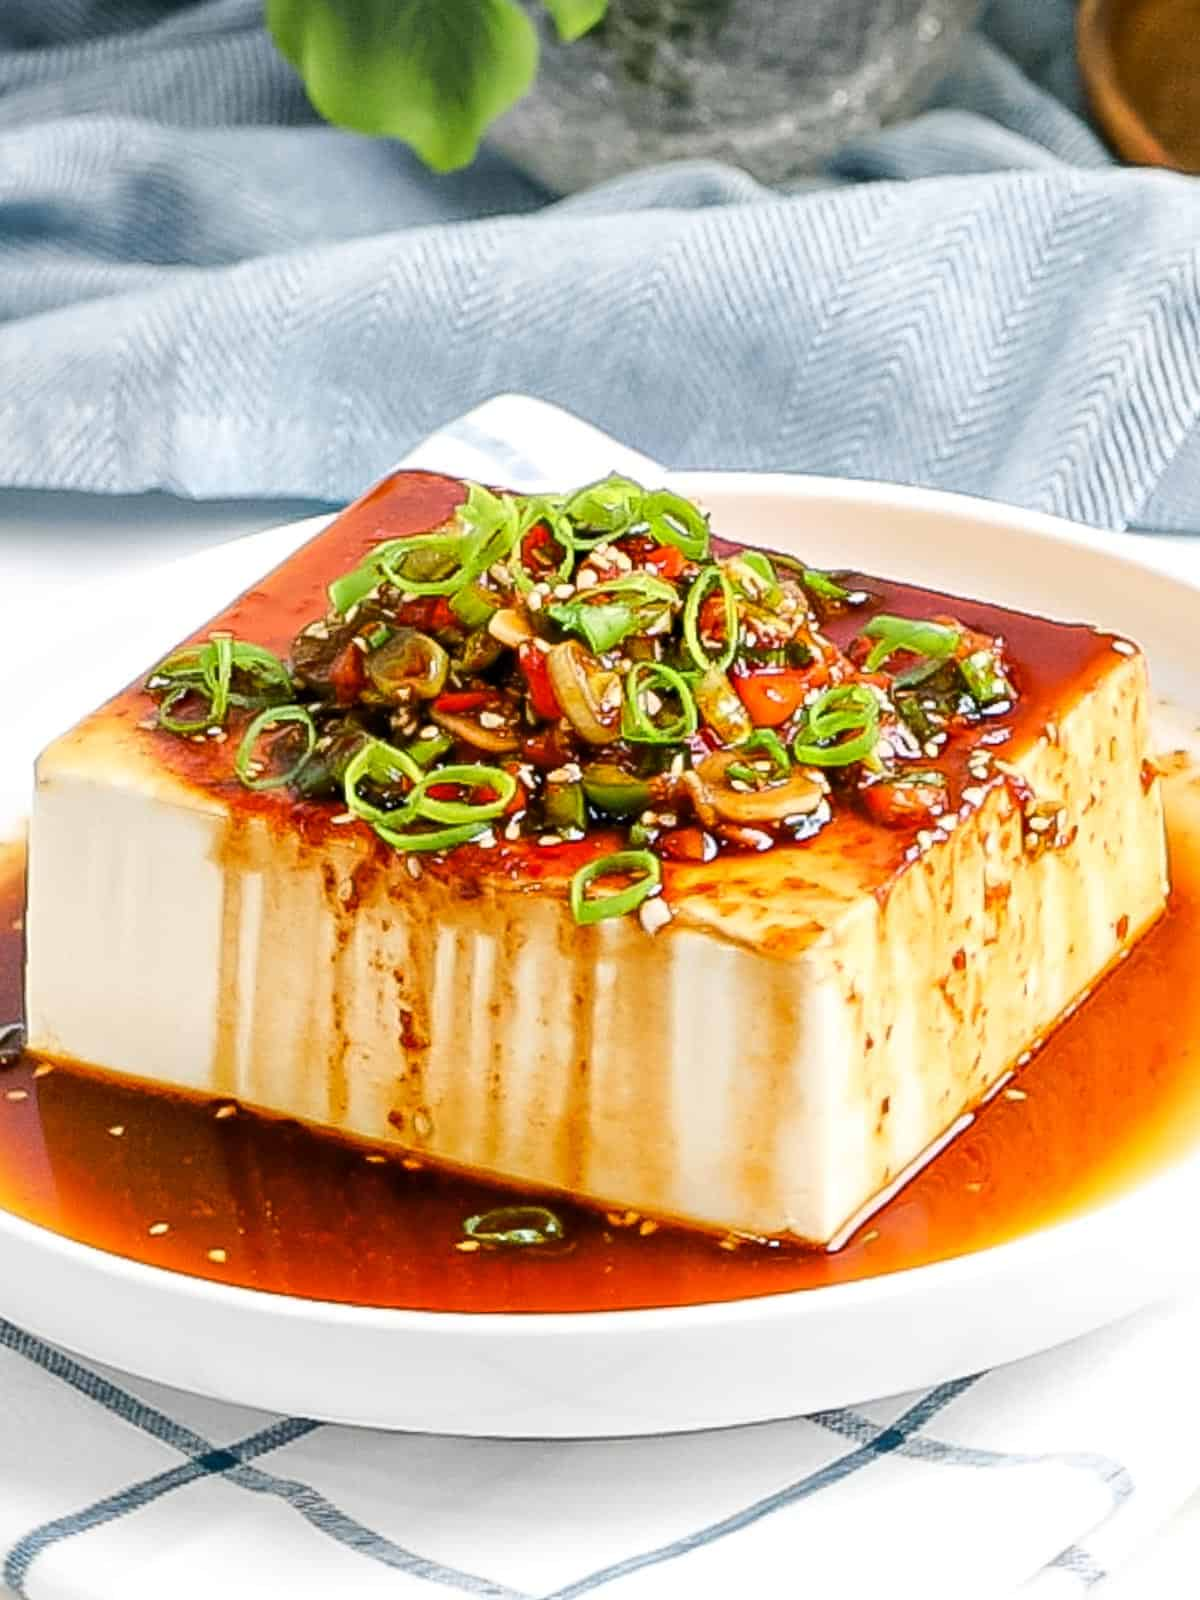 Silken tofu with Korean soy sauce made with green onions, red pepper flakes, sesame seeds poured on top.